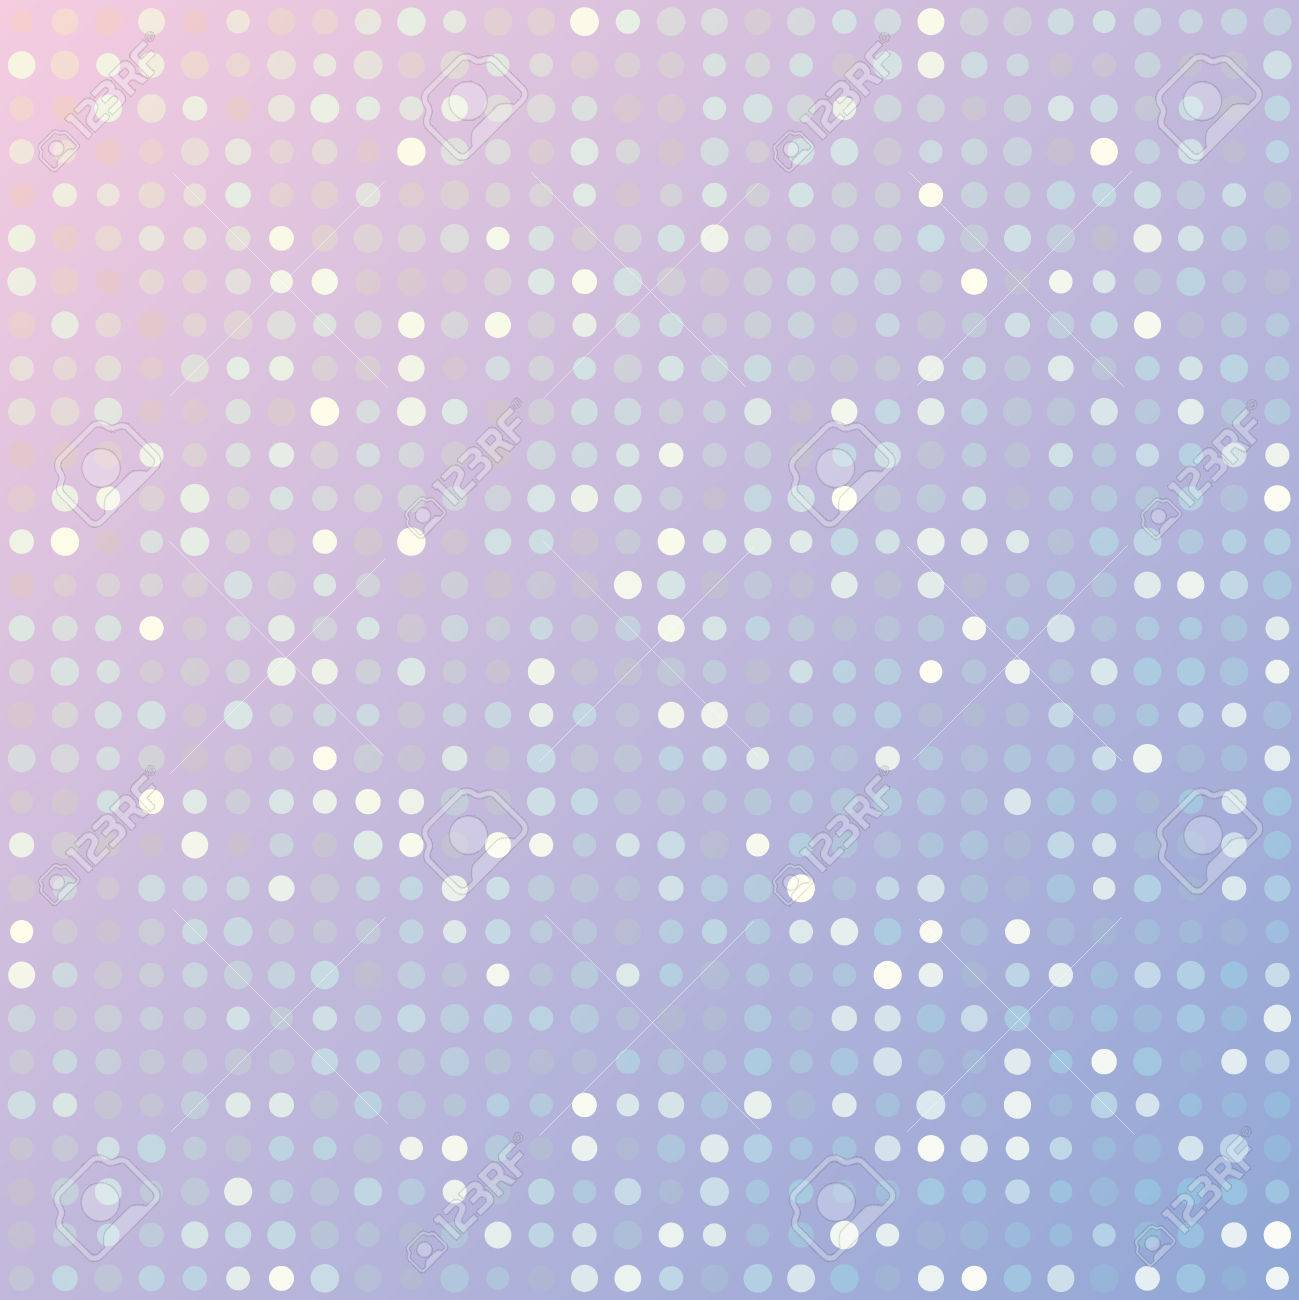 Blue Serenity And Pink Rose Quartz Gradient Background Of Multiples